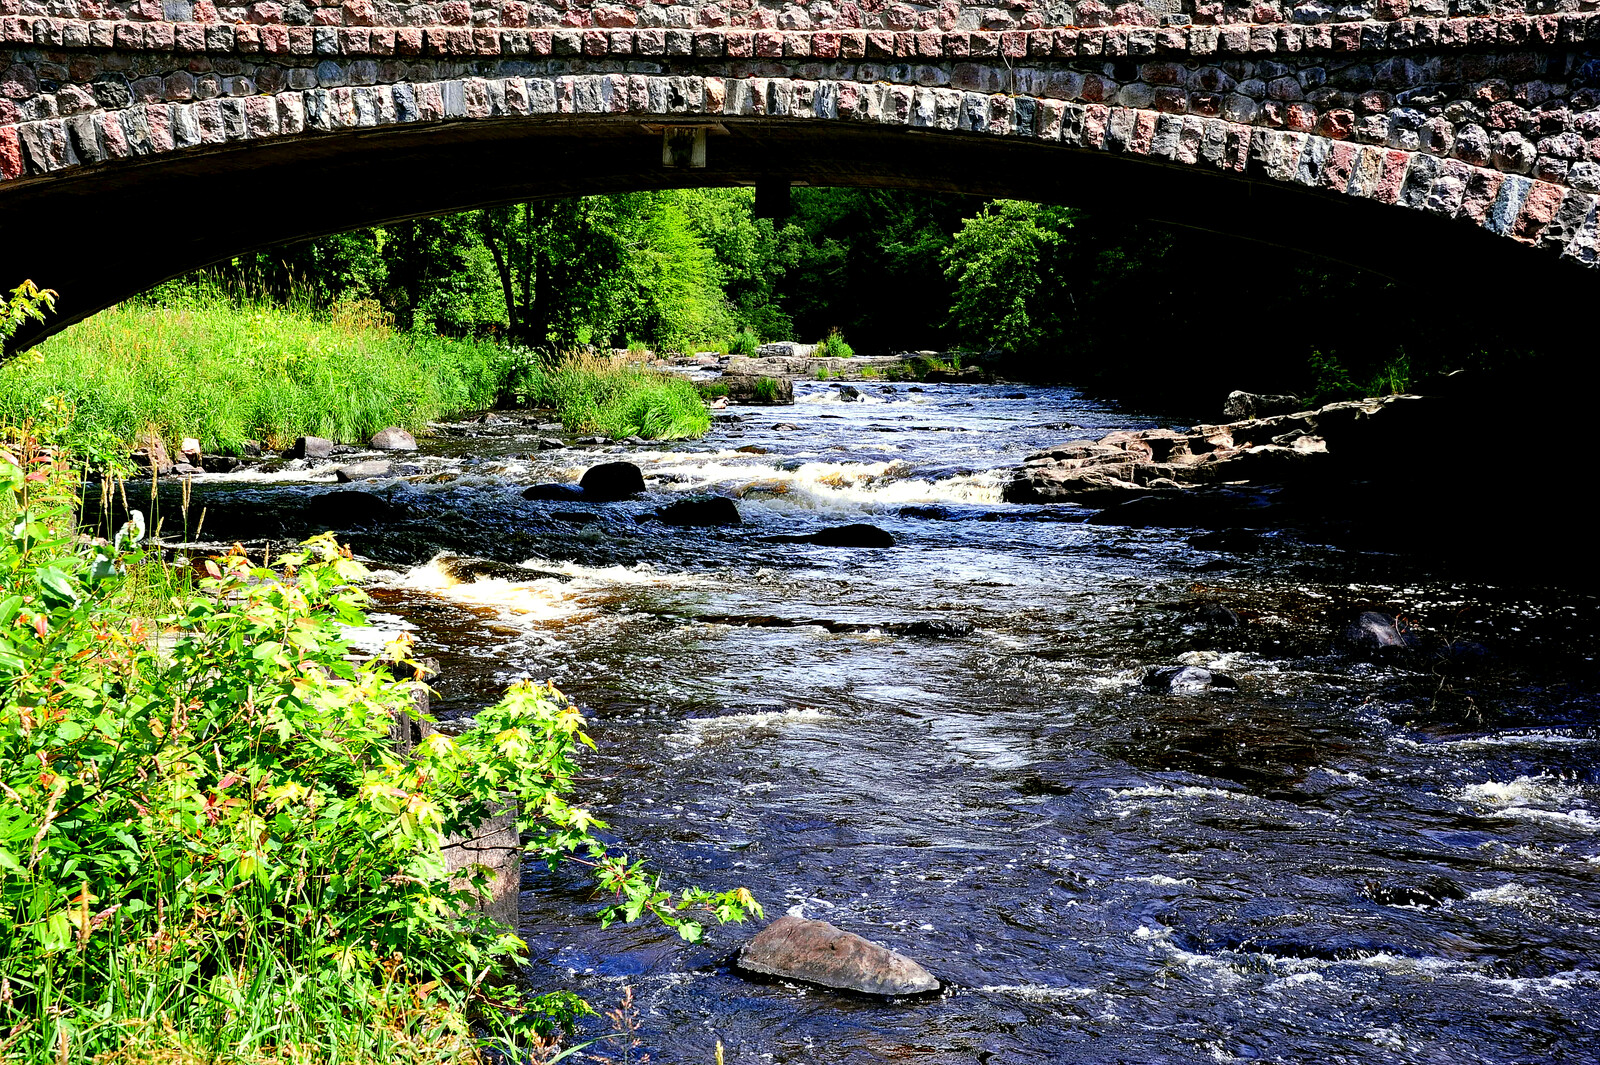 A stone bridge running over a river with greenery on the sides of the river, in Eau Claire Wisconsin